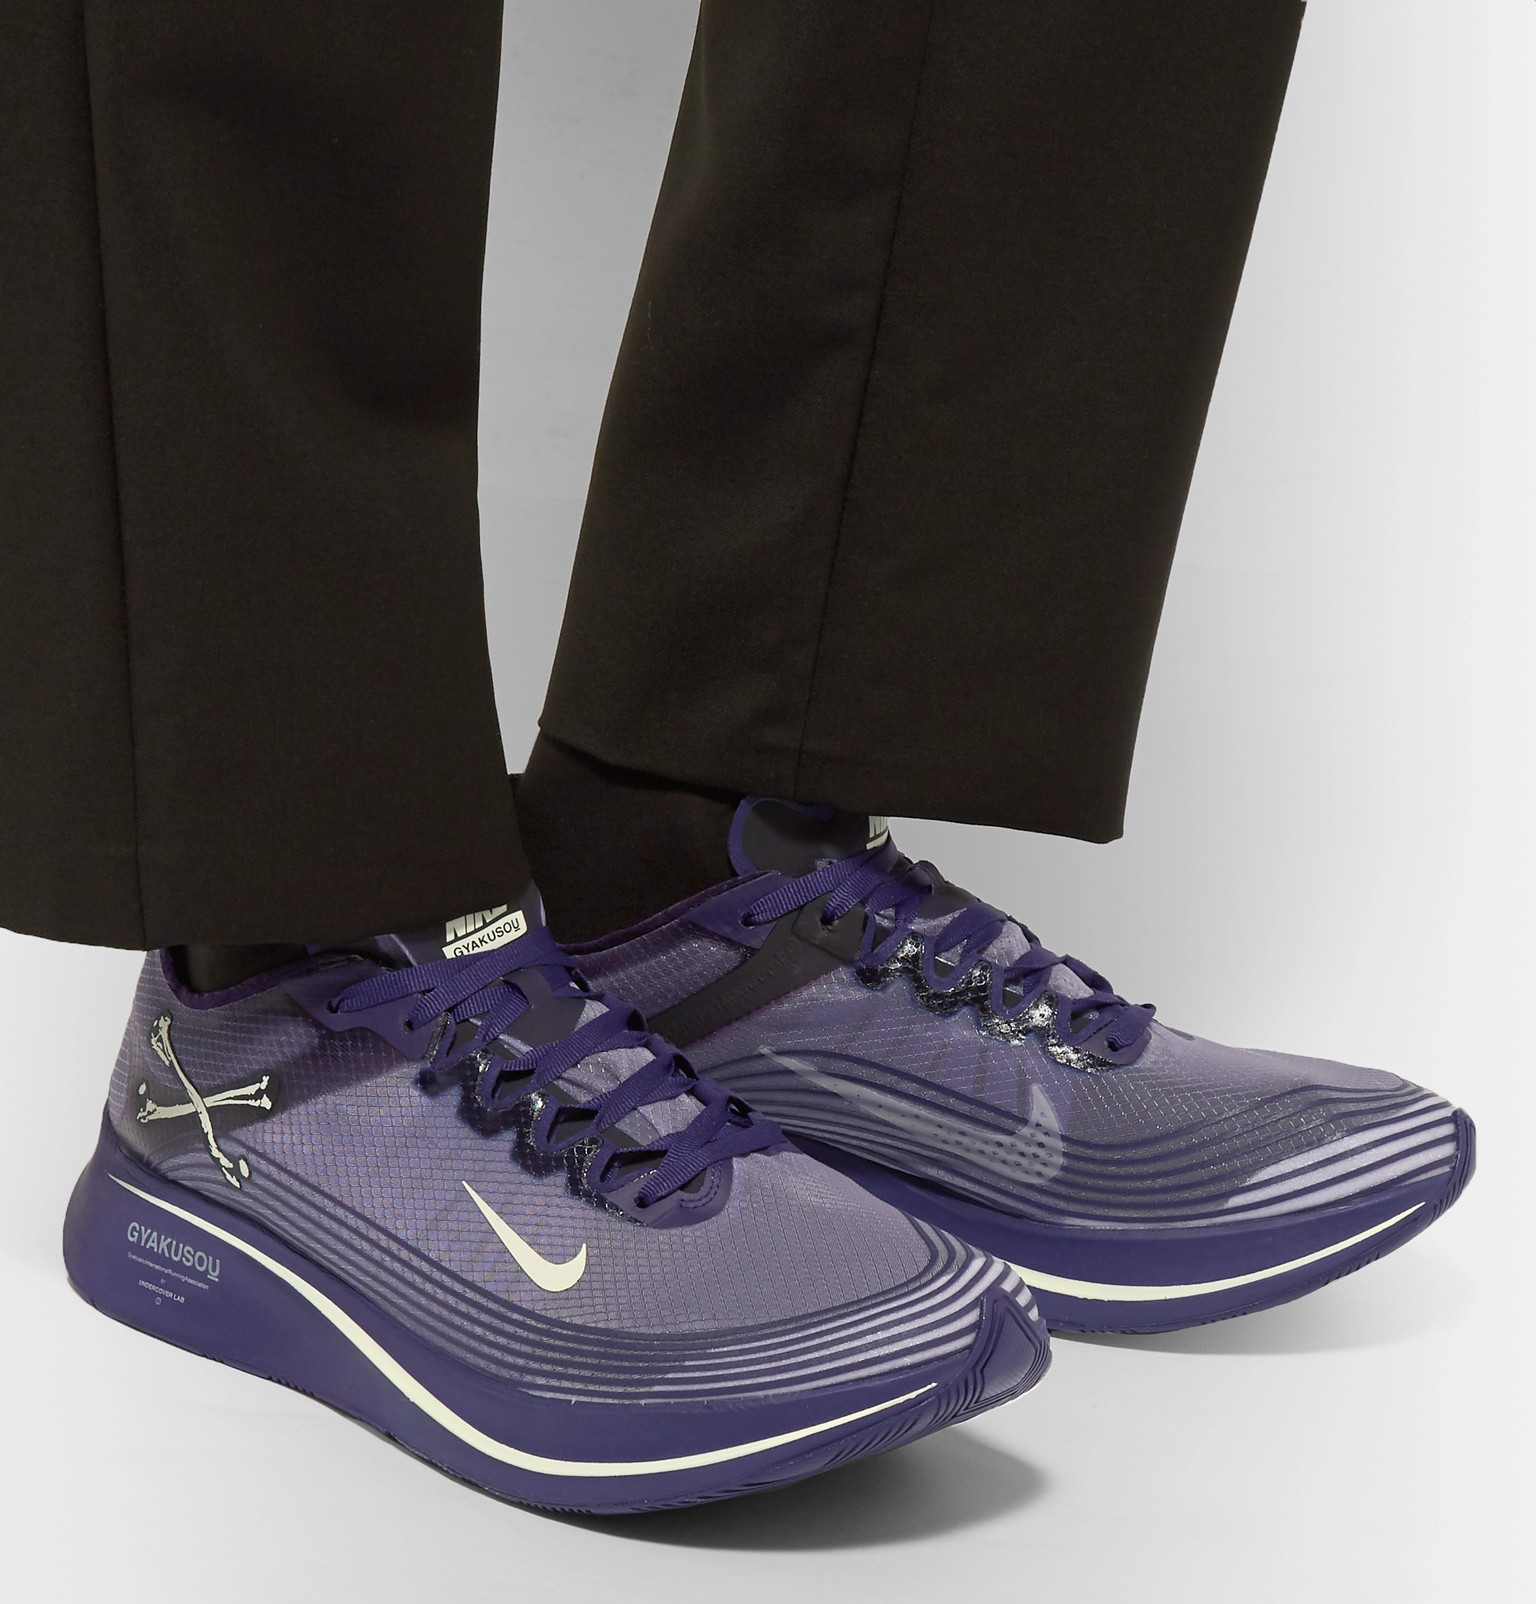 abf1ec5ca30f3 Nike x Undercover - + GYAKUSOU Zoom Fly SP Ripstop Sneakers